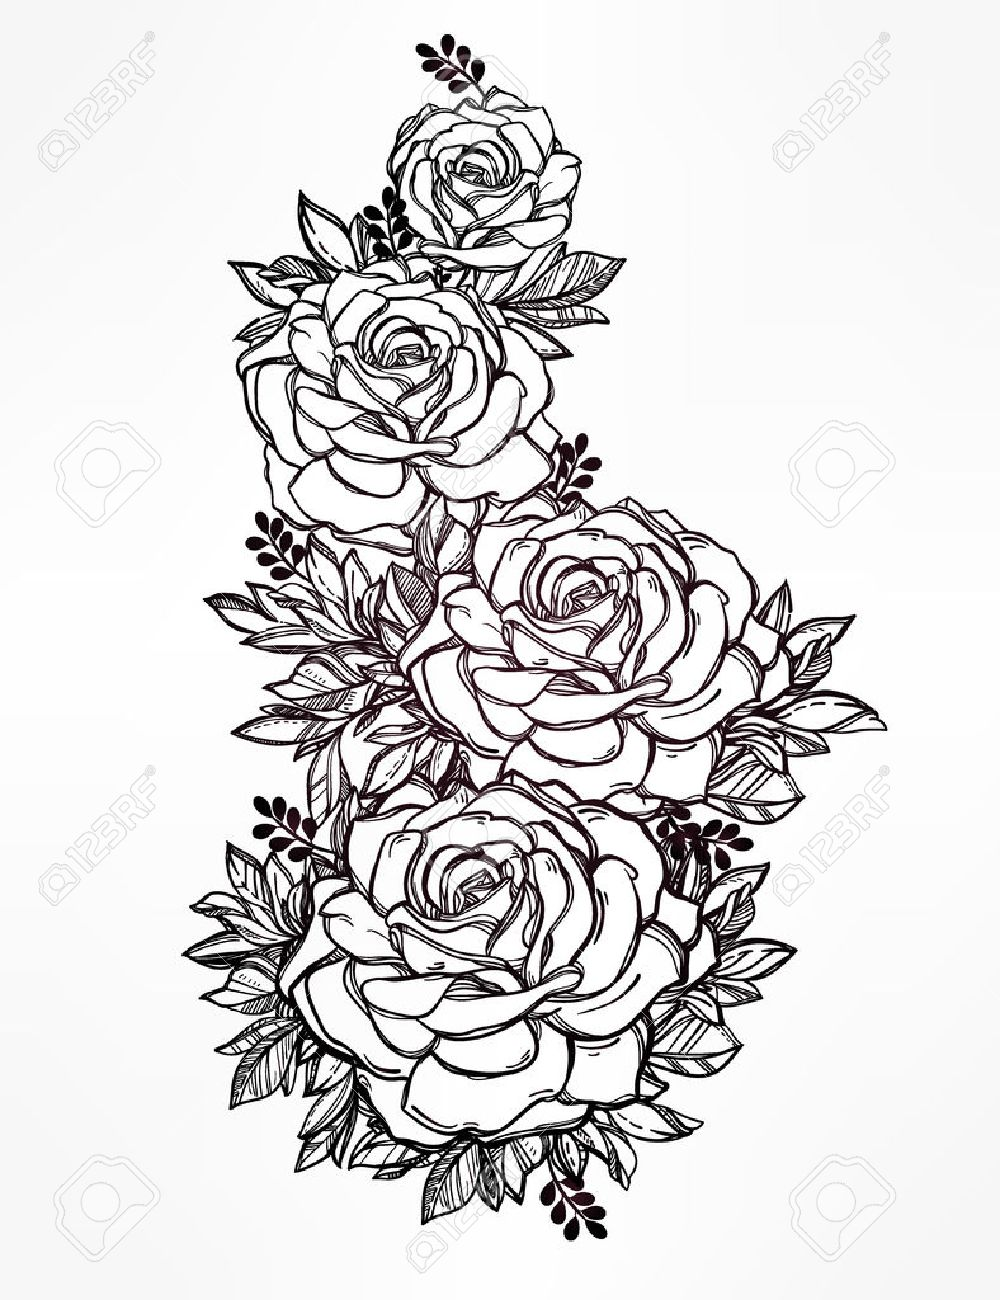 1000x1300 Vintage Floral Highly Detailed Hand Drawn Rose Flower Stem